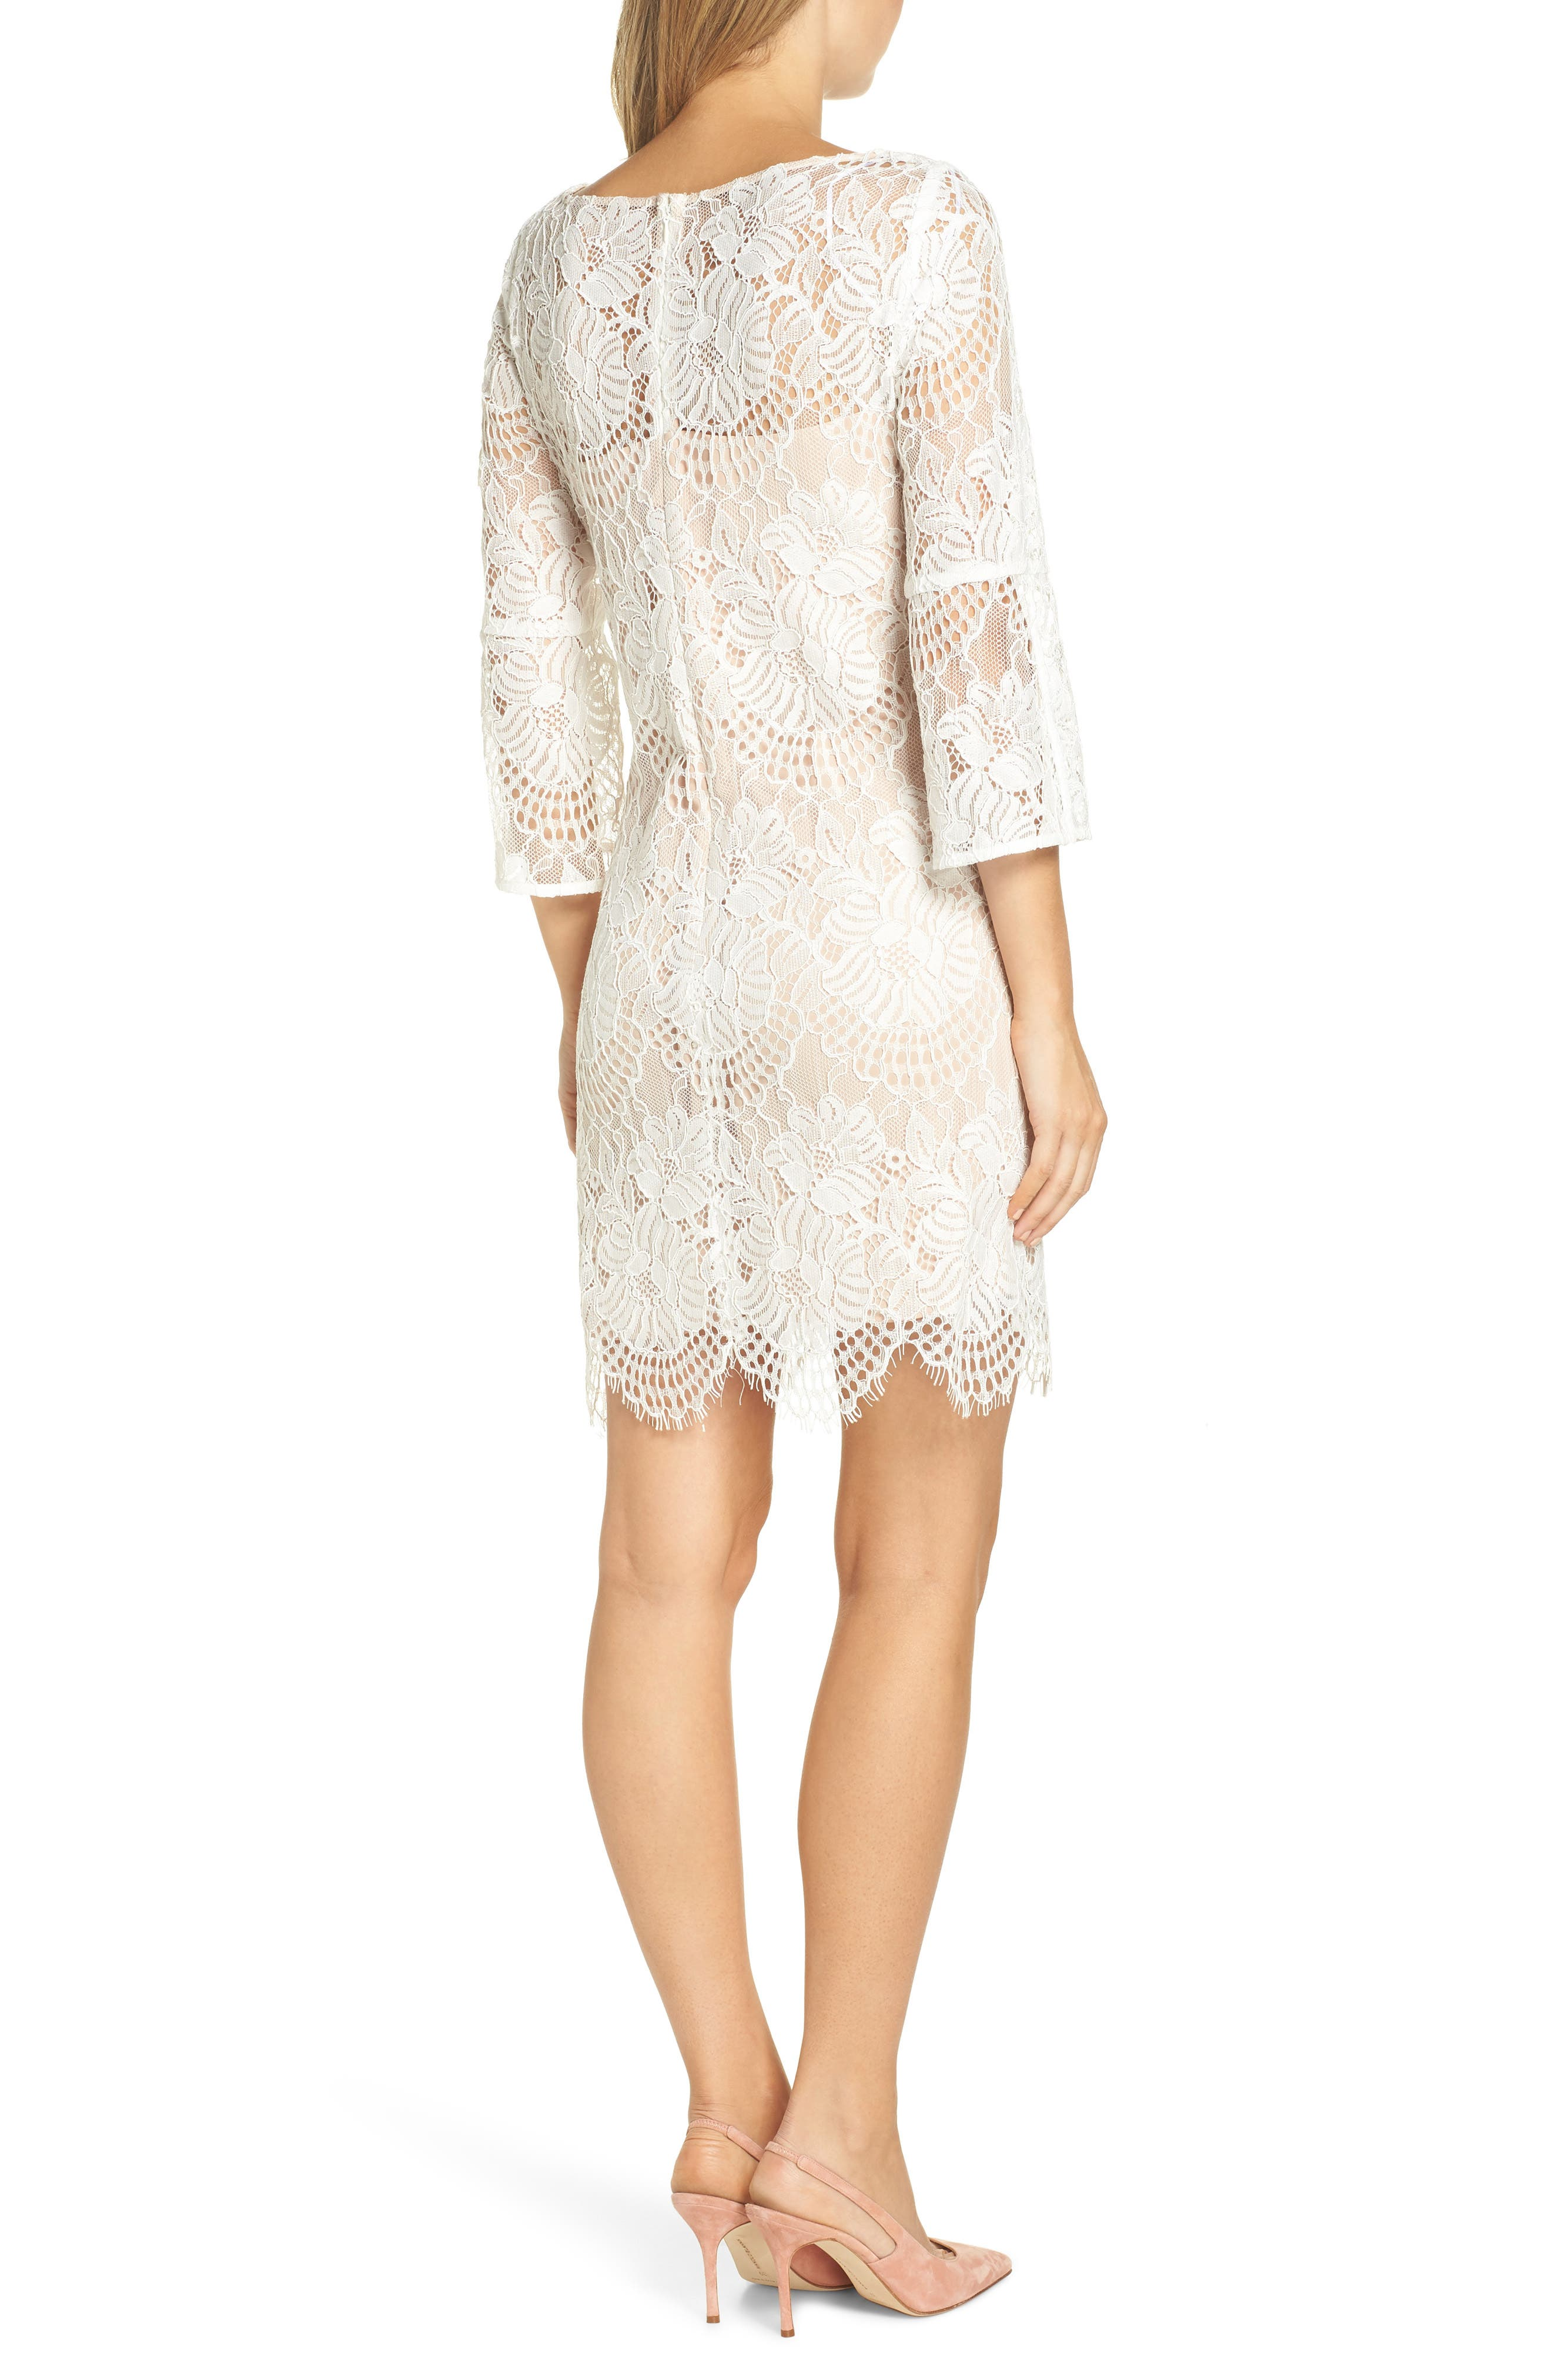 VINCE CAMUTO,                             Lace Shift Dress,                             Alternate thumbnail 2, color,                             IVORY